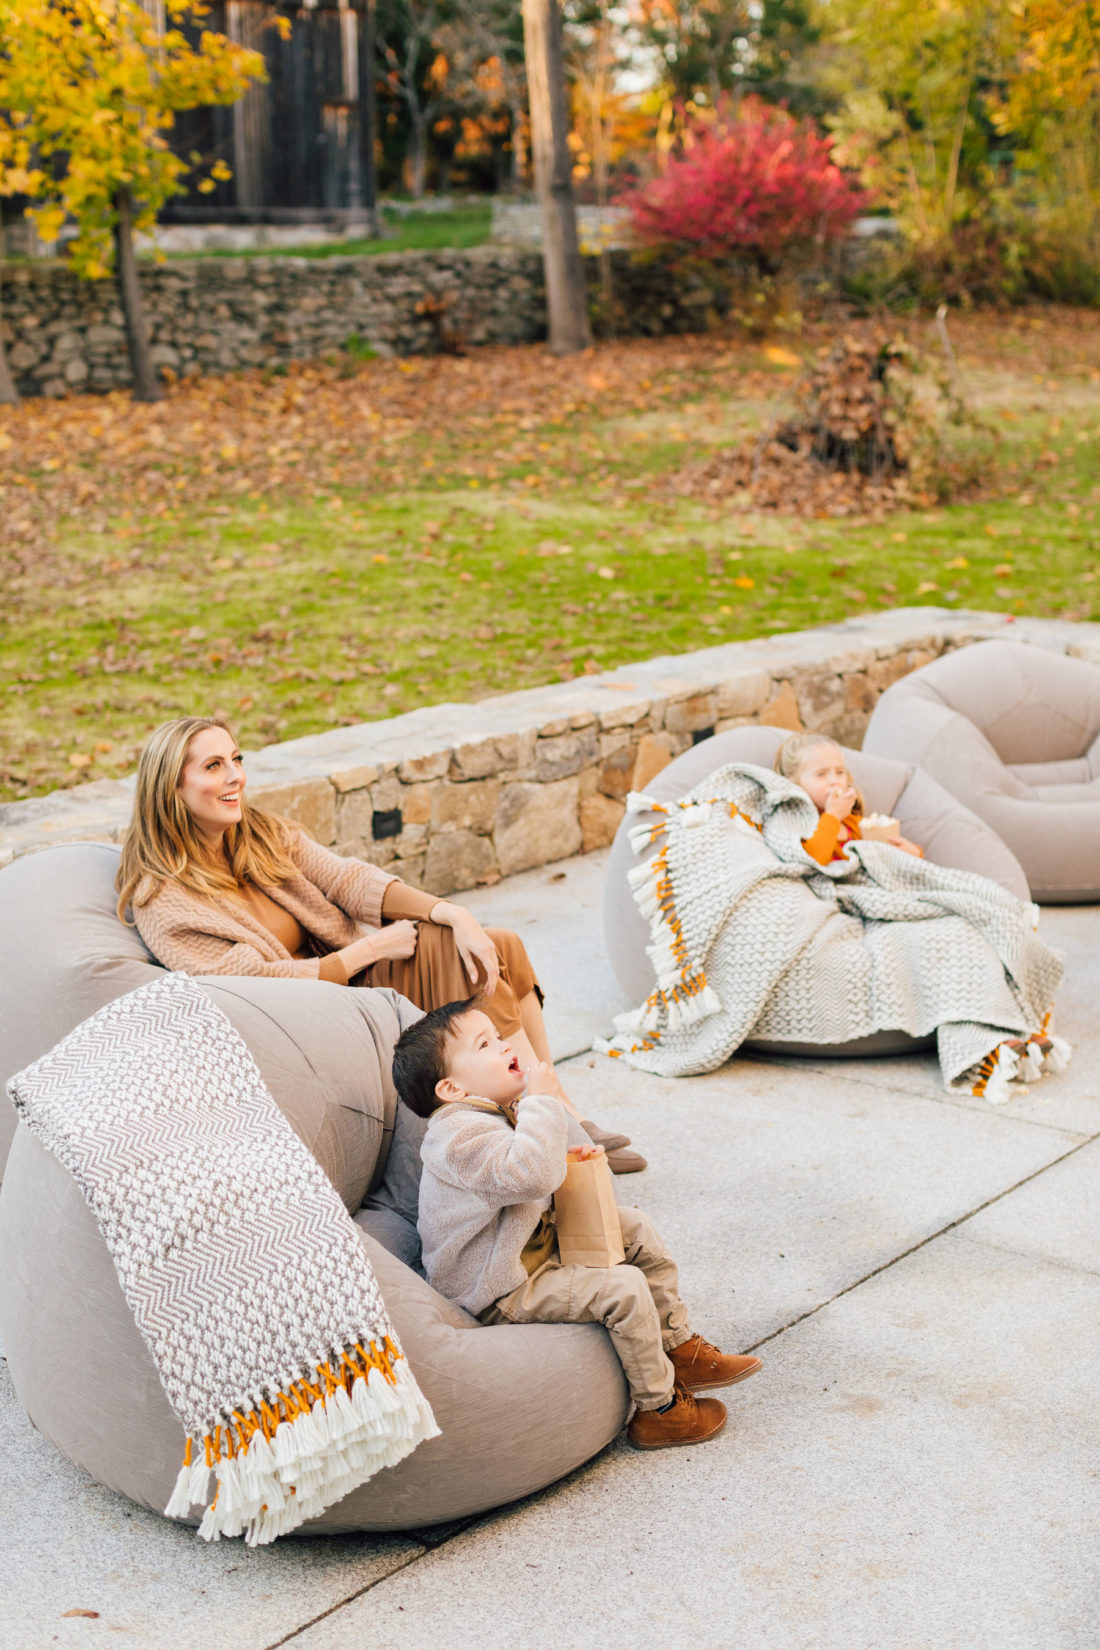 Eva Amurri and kids Marlowe and Major sit on beanbag chairs for an outdoor movie night on the back patio of her Connecticut home